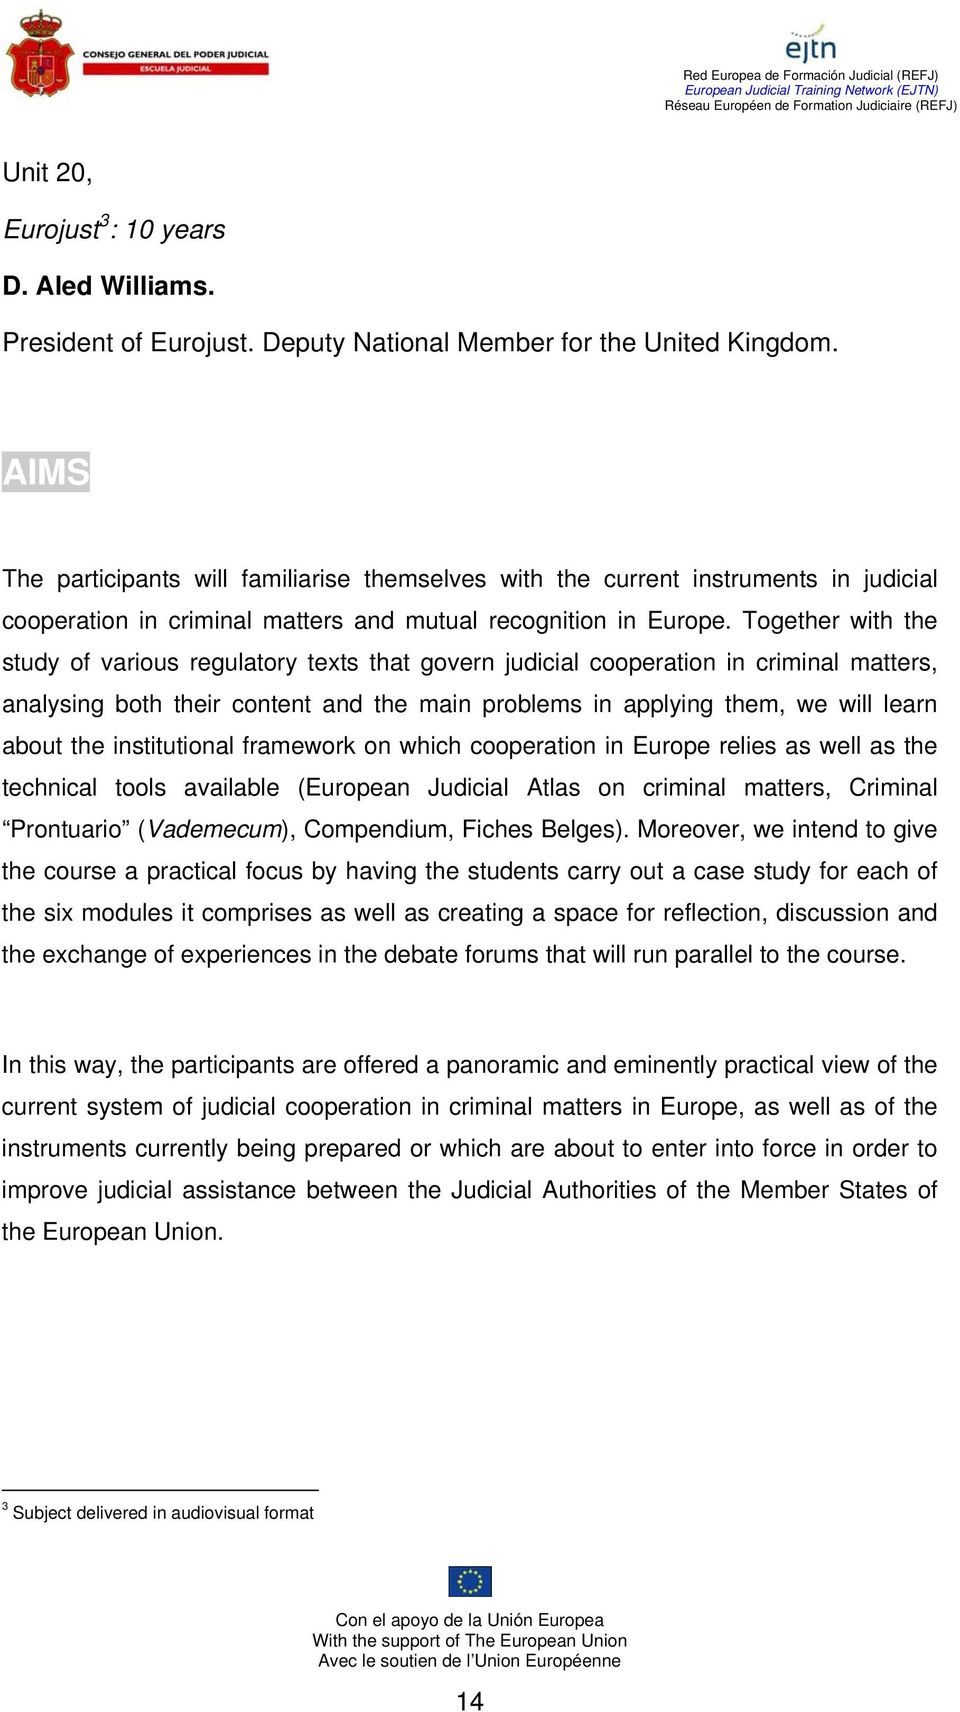 Together with the study of various regulatory texts that govern judicial cooperation in criminal matters, analysing both their content and the main problems in applying them, we will learn about the